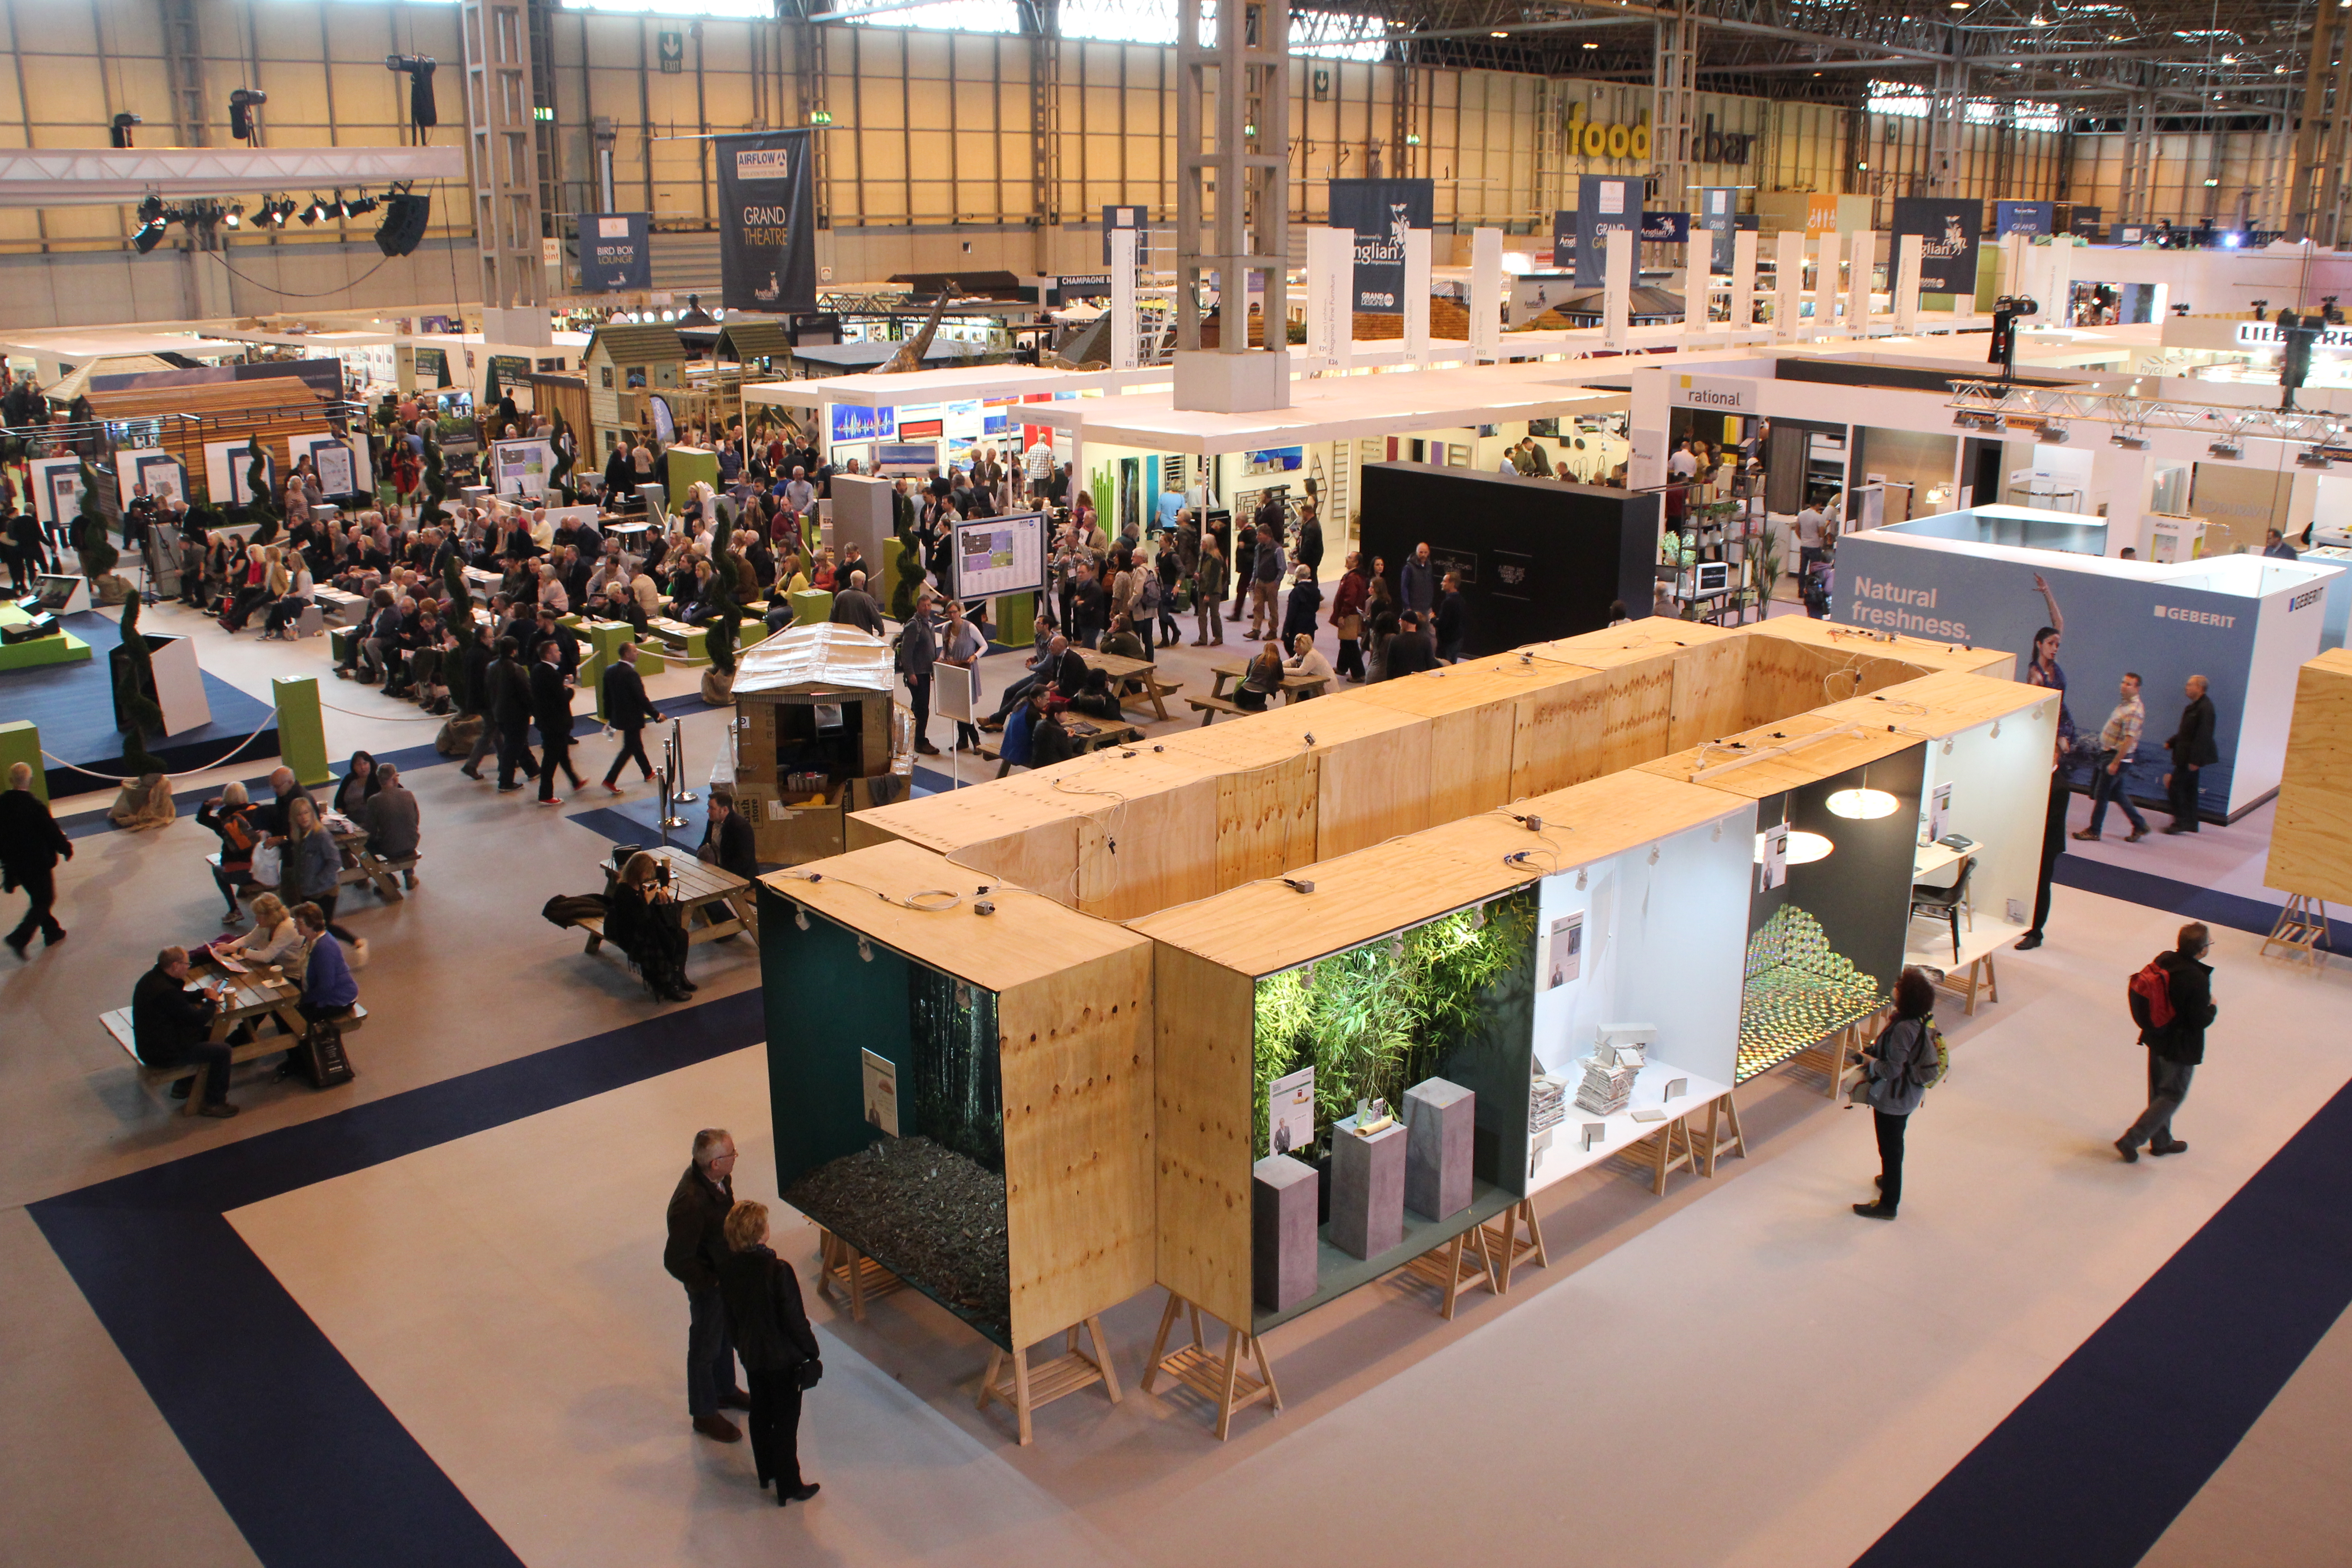 Grand designs live / self build on a shoestring